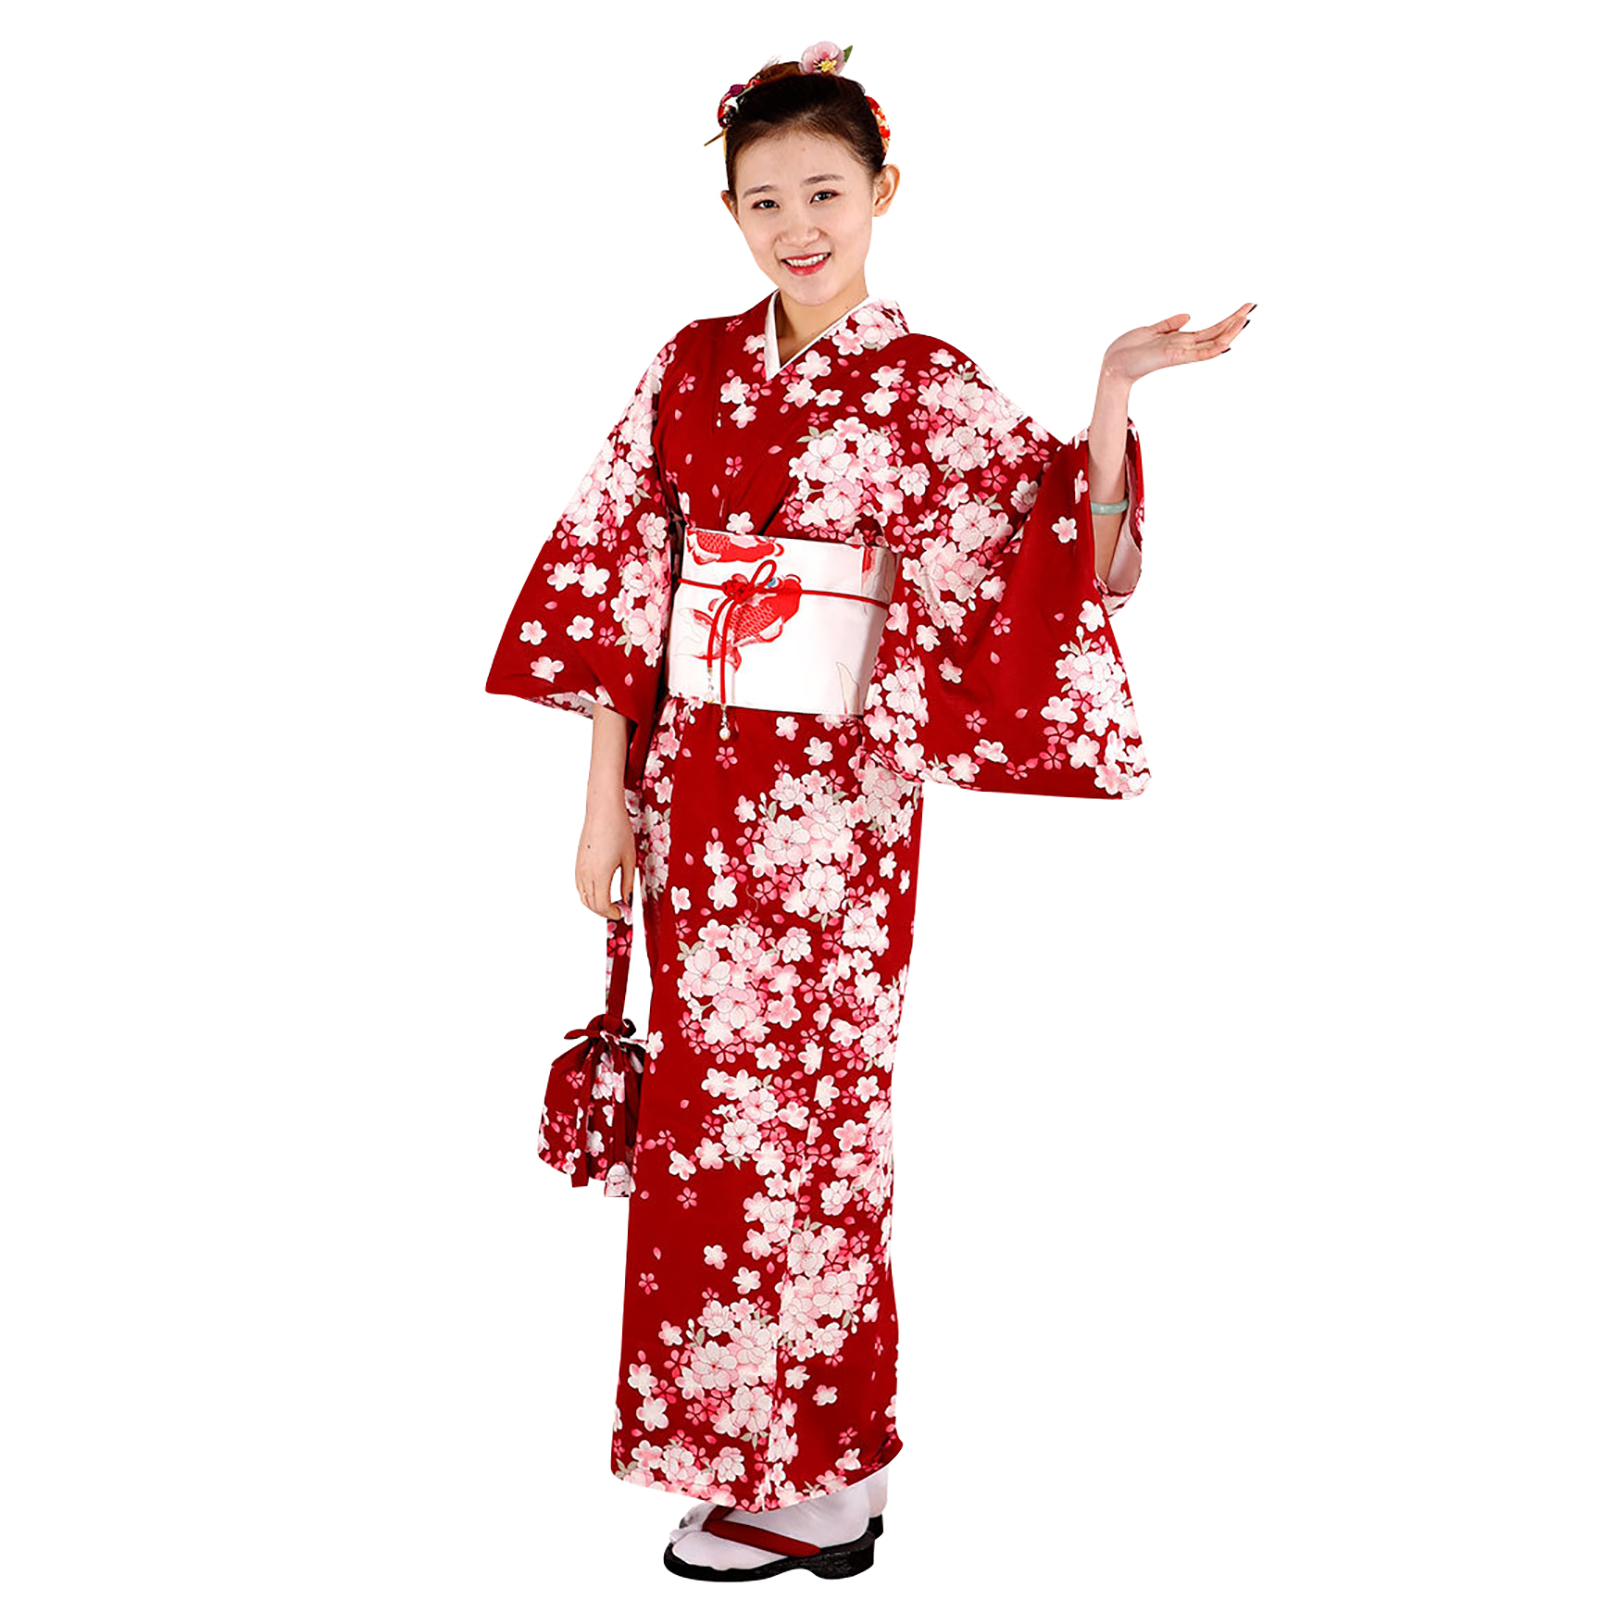 Women's Red Floral Kimono Robe Traditional Japanese Geisha Cosplay Costume Winter Sweets Pattern Yukata Dress